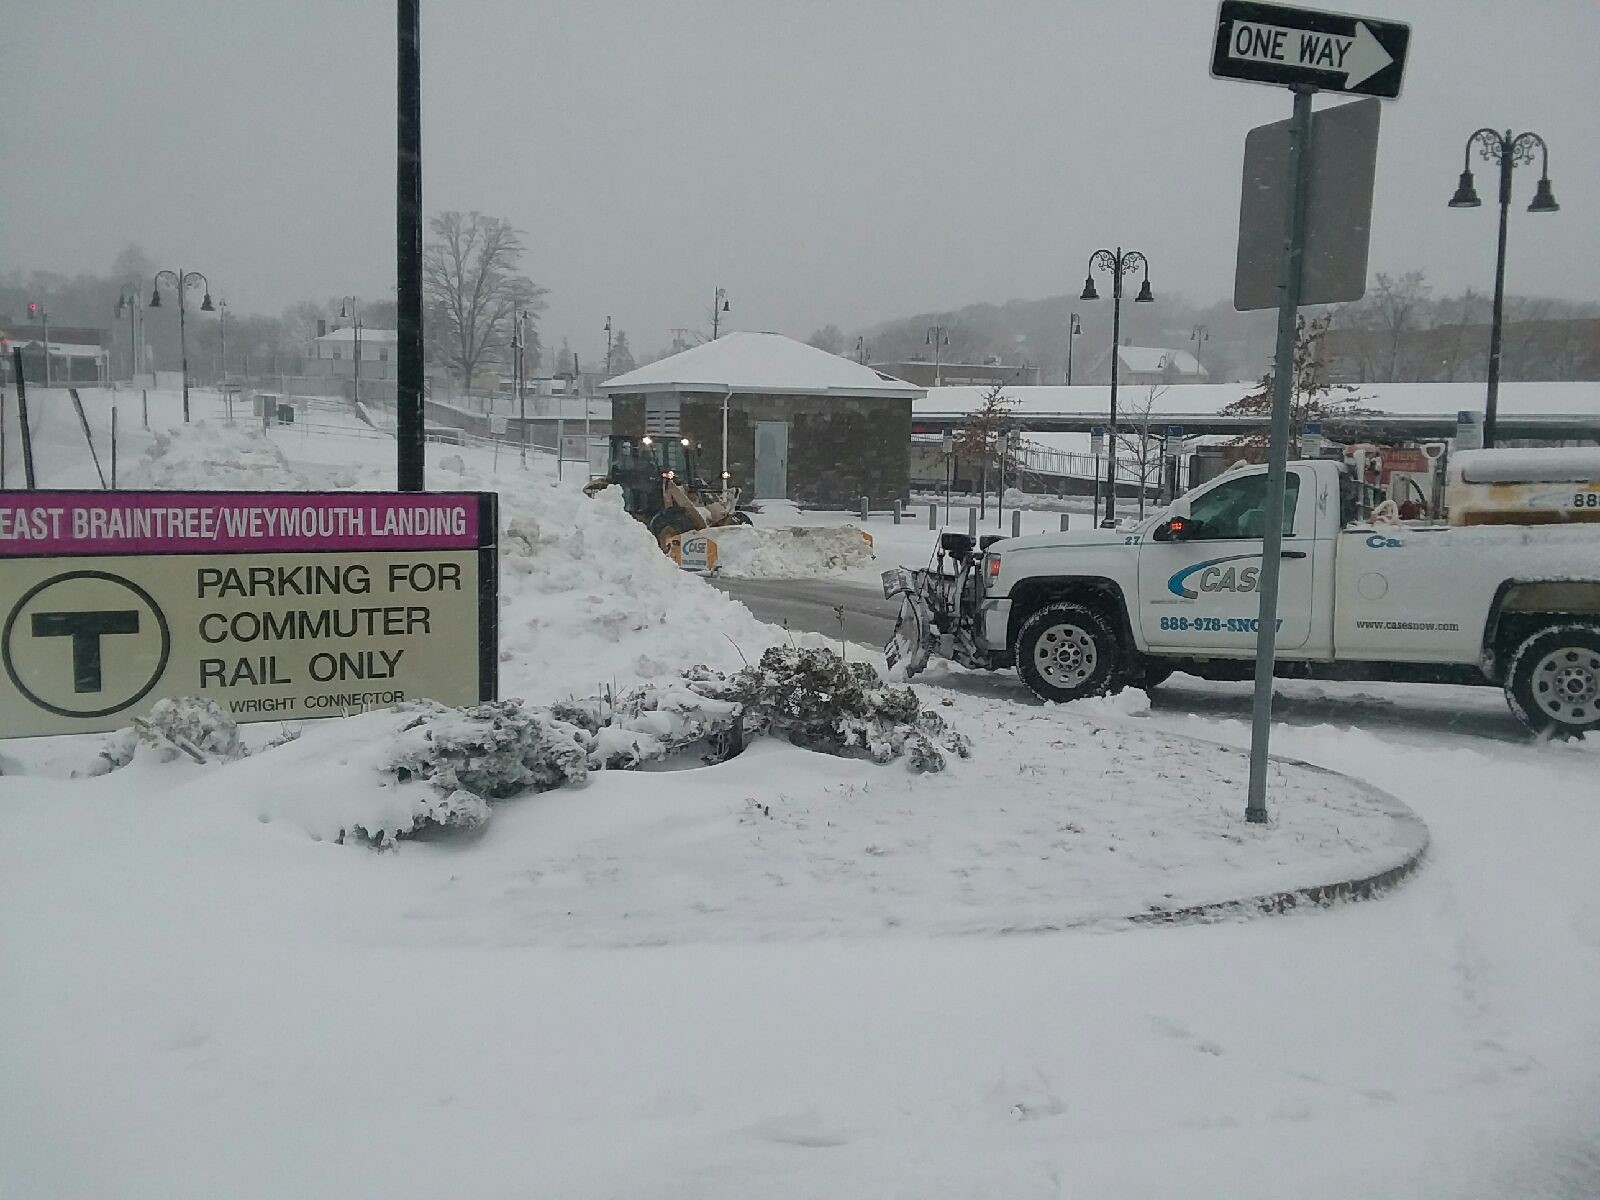 A truck with a plow attached pushes snow out of the entrance to the parking lot.